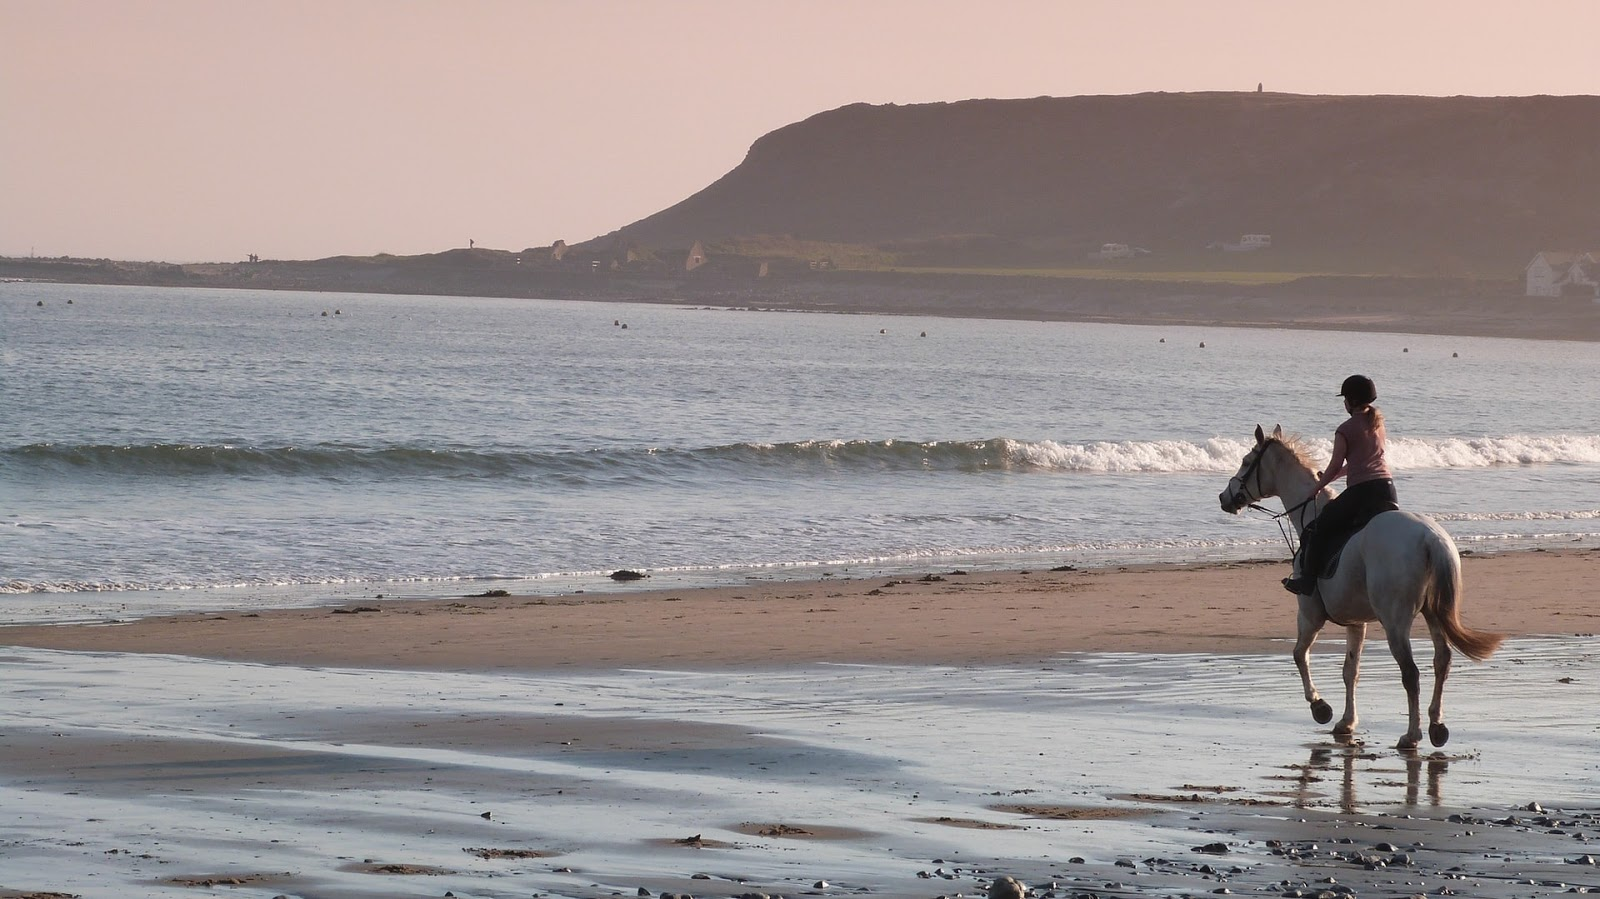 A white horse and rider are at the beach, walking close to the shore.